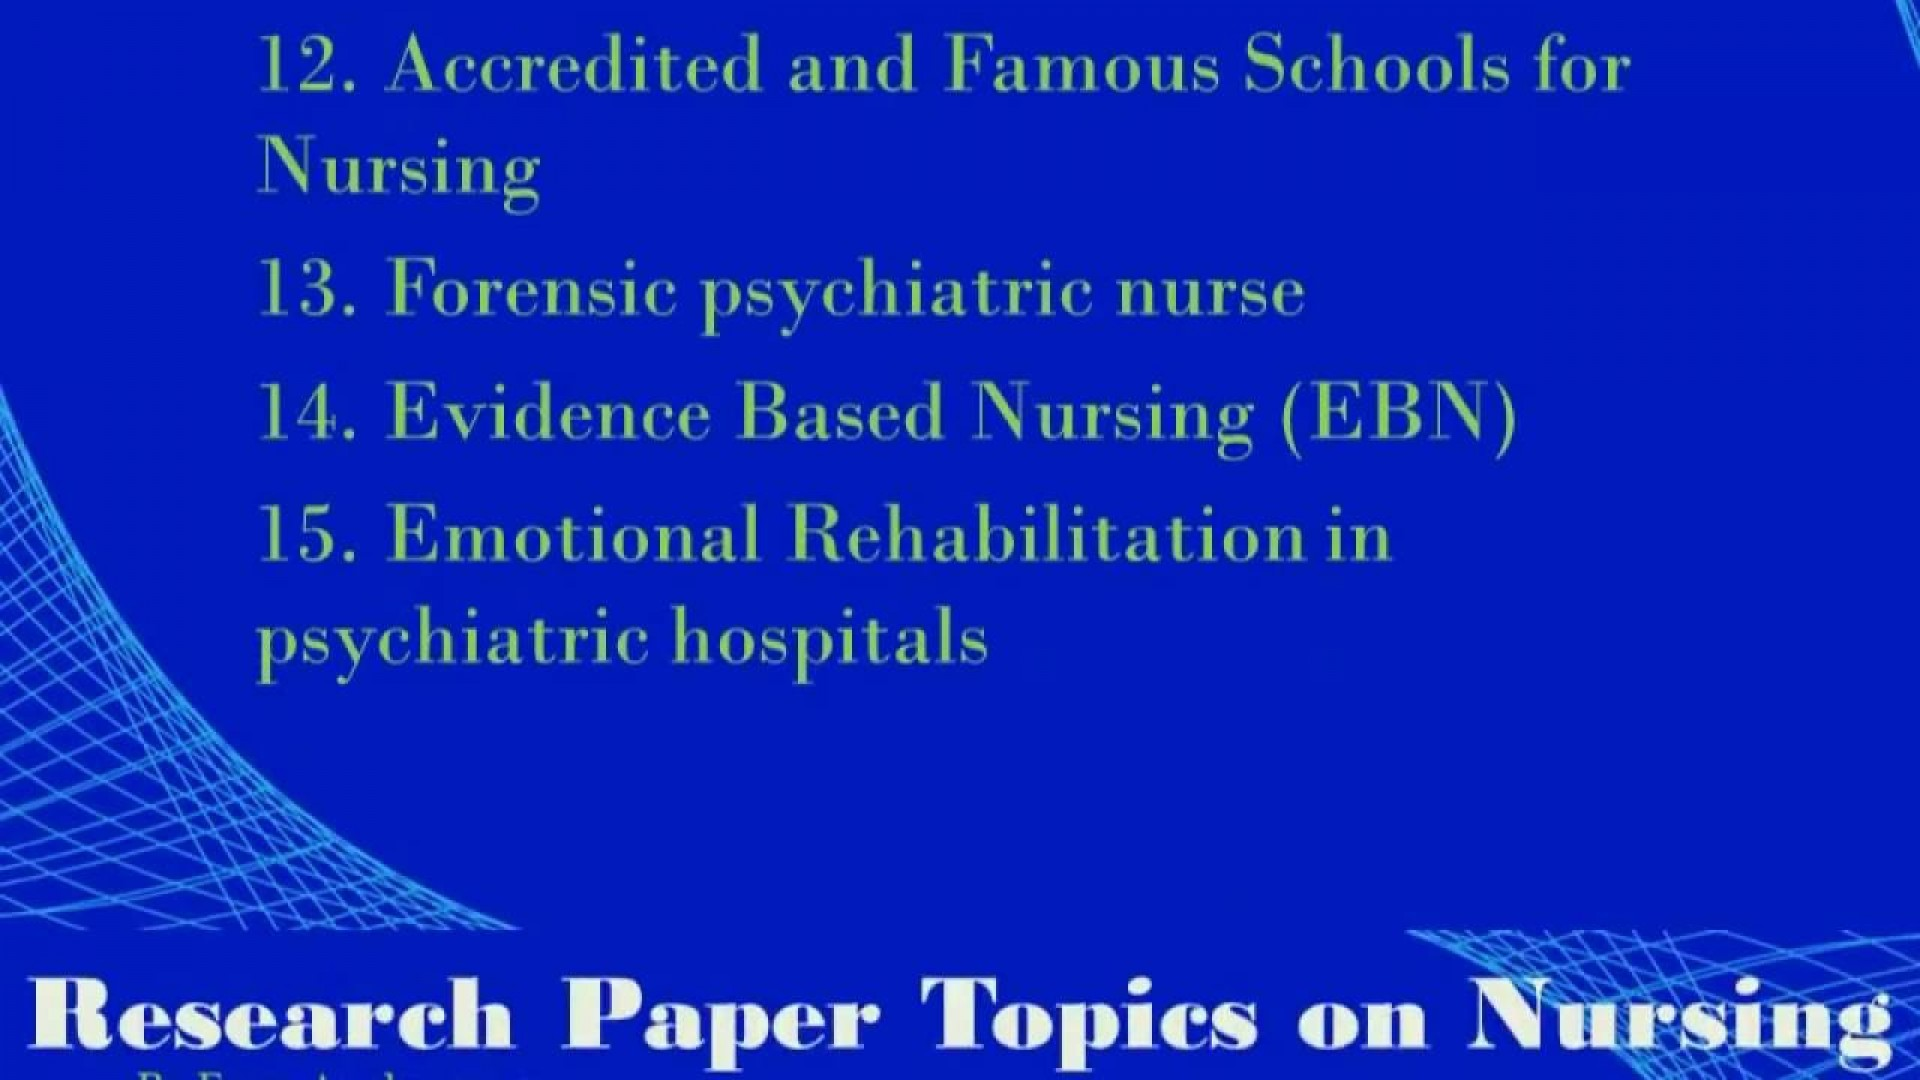 015 Research Paper About Nursing Unforgettable Career Sample Related To Topics 1920